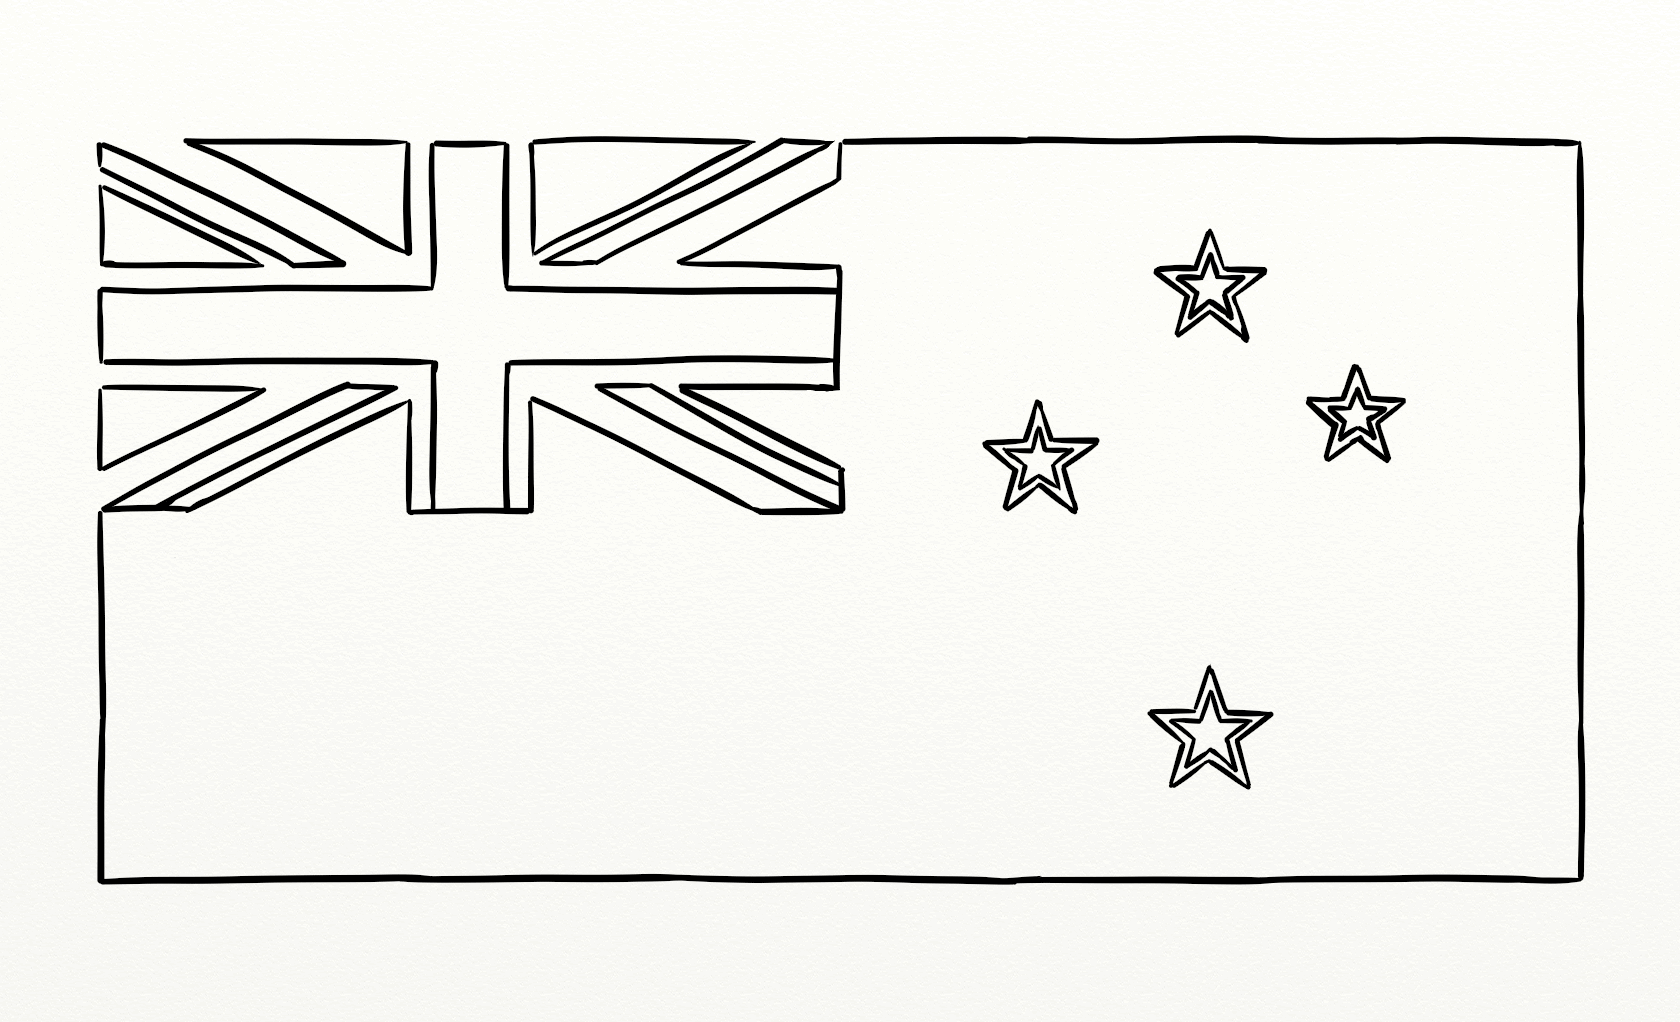 new zealand flag coloring page new zealand flag outline for colouring in learning coloring flag page new zealand